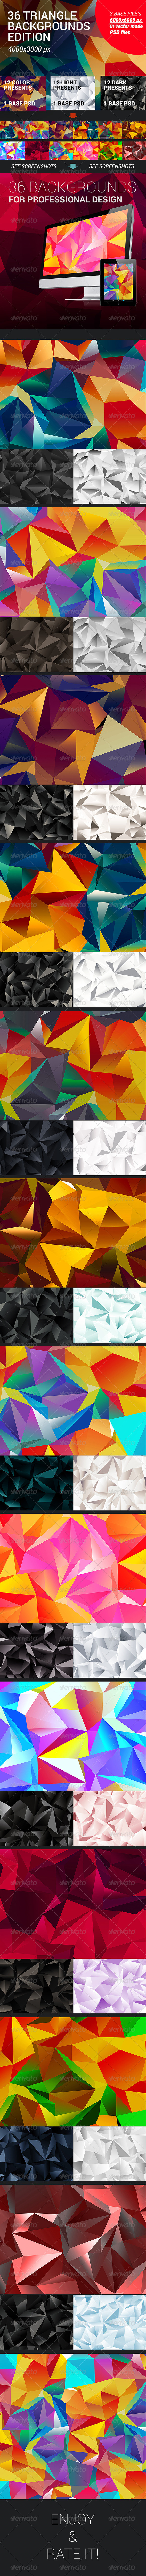 GraphicRiver 36 Mega Set Flat Triangle Backgrounds 7414013